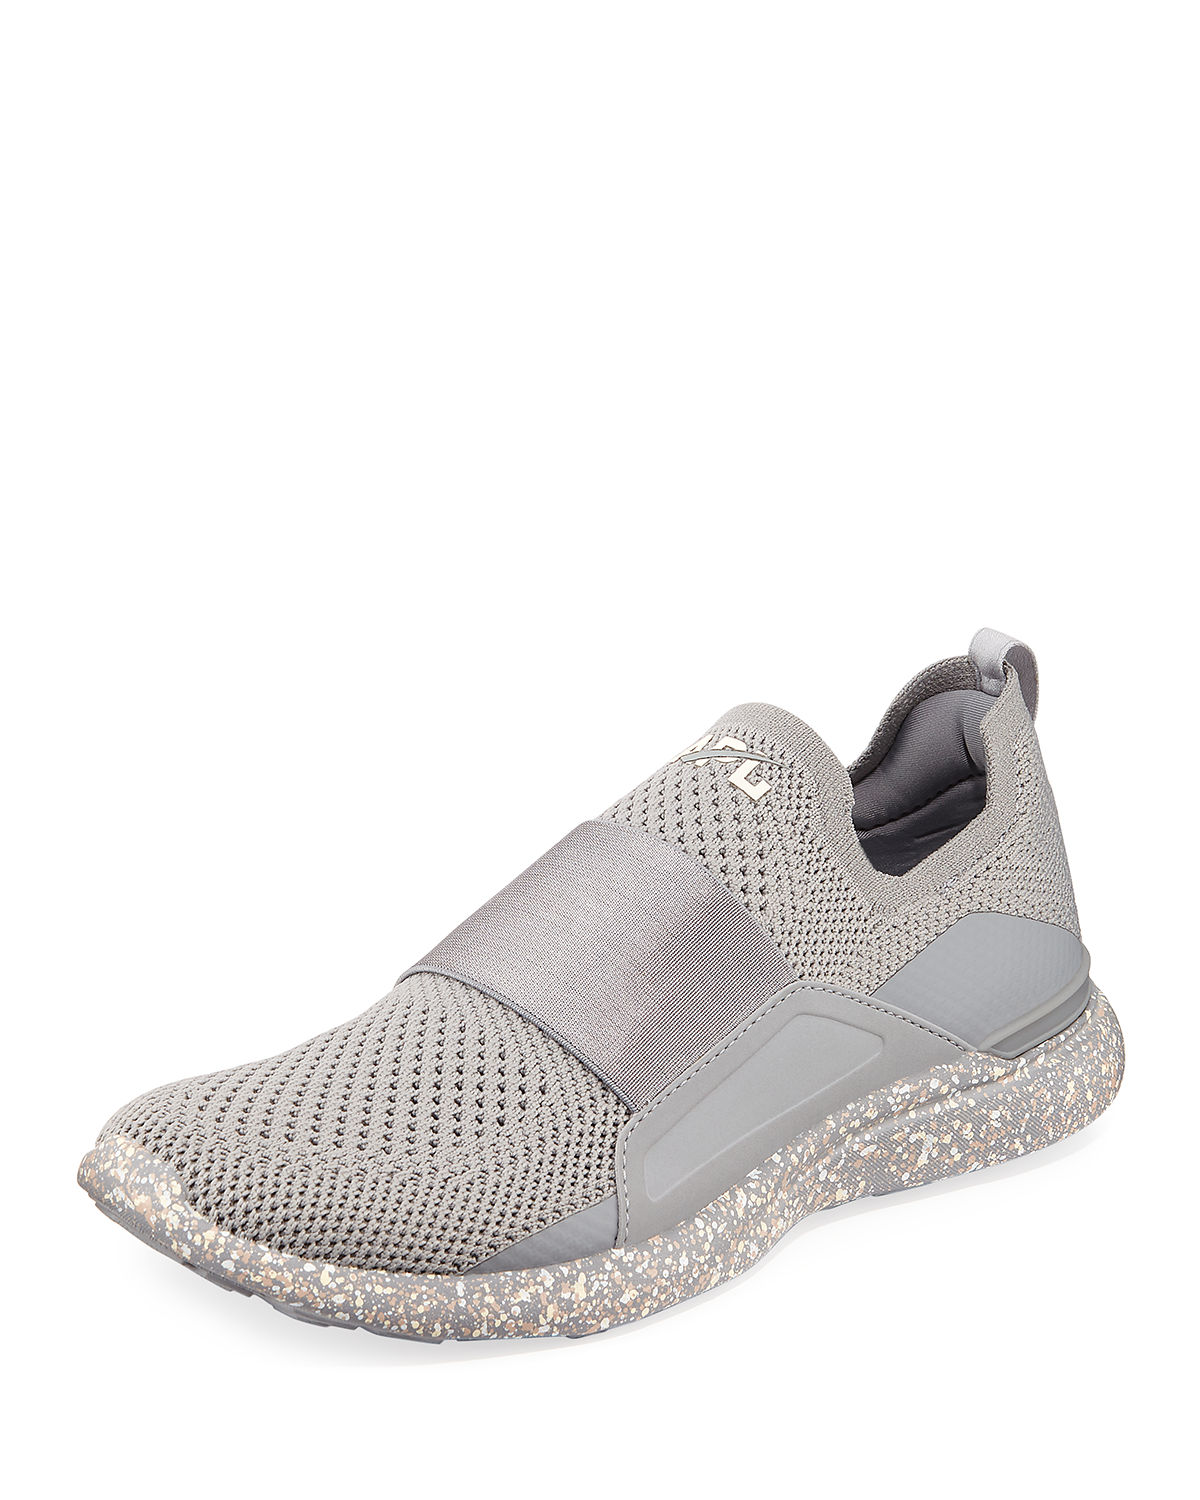 Apl Athletic Propulsion Labs TECHLOOM BLISS PRO KNIT MESH SNEAKERS